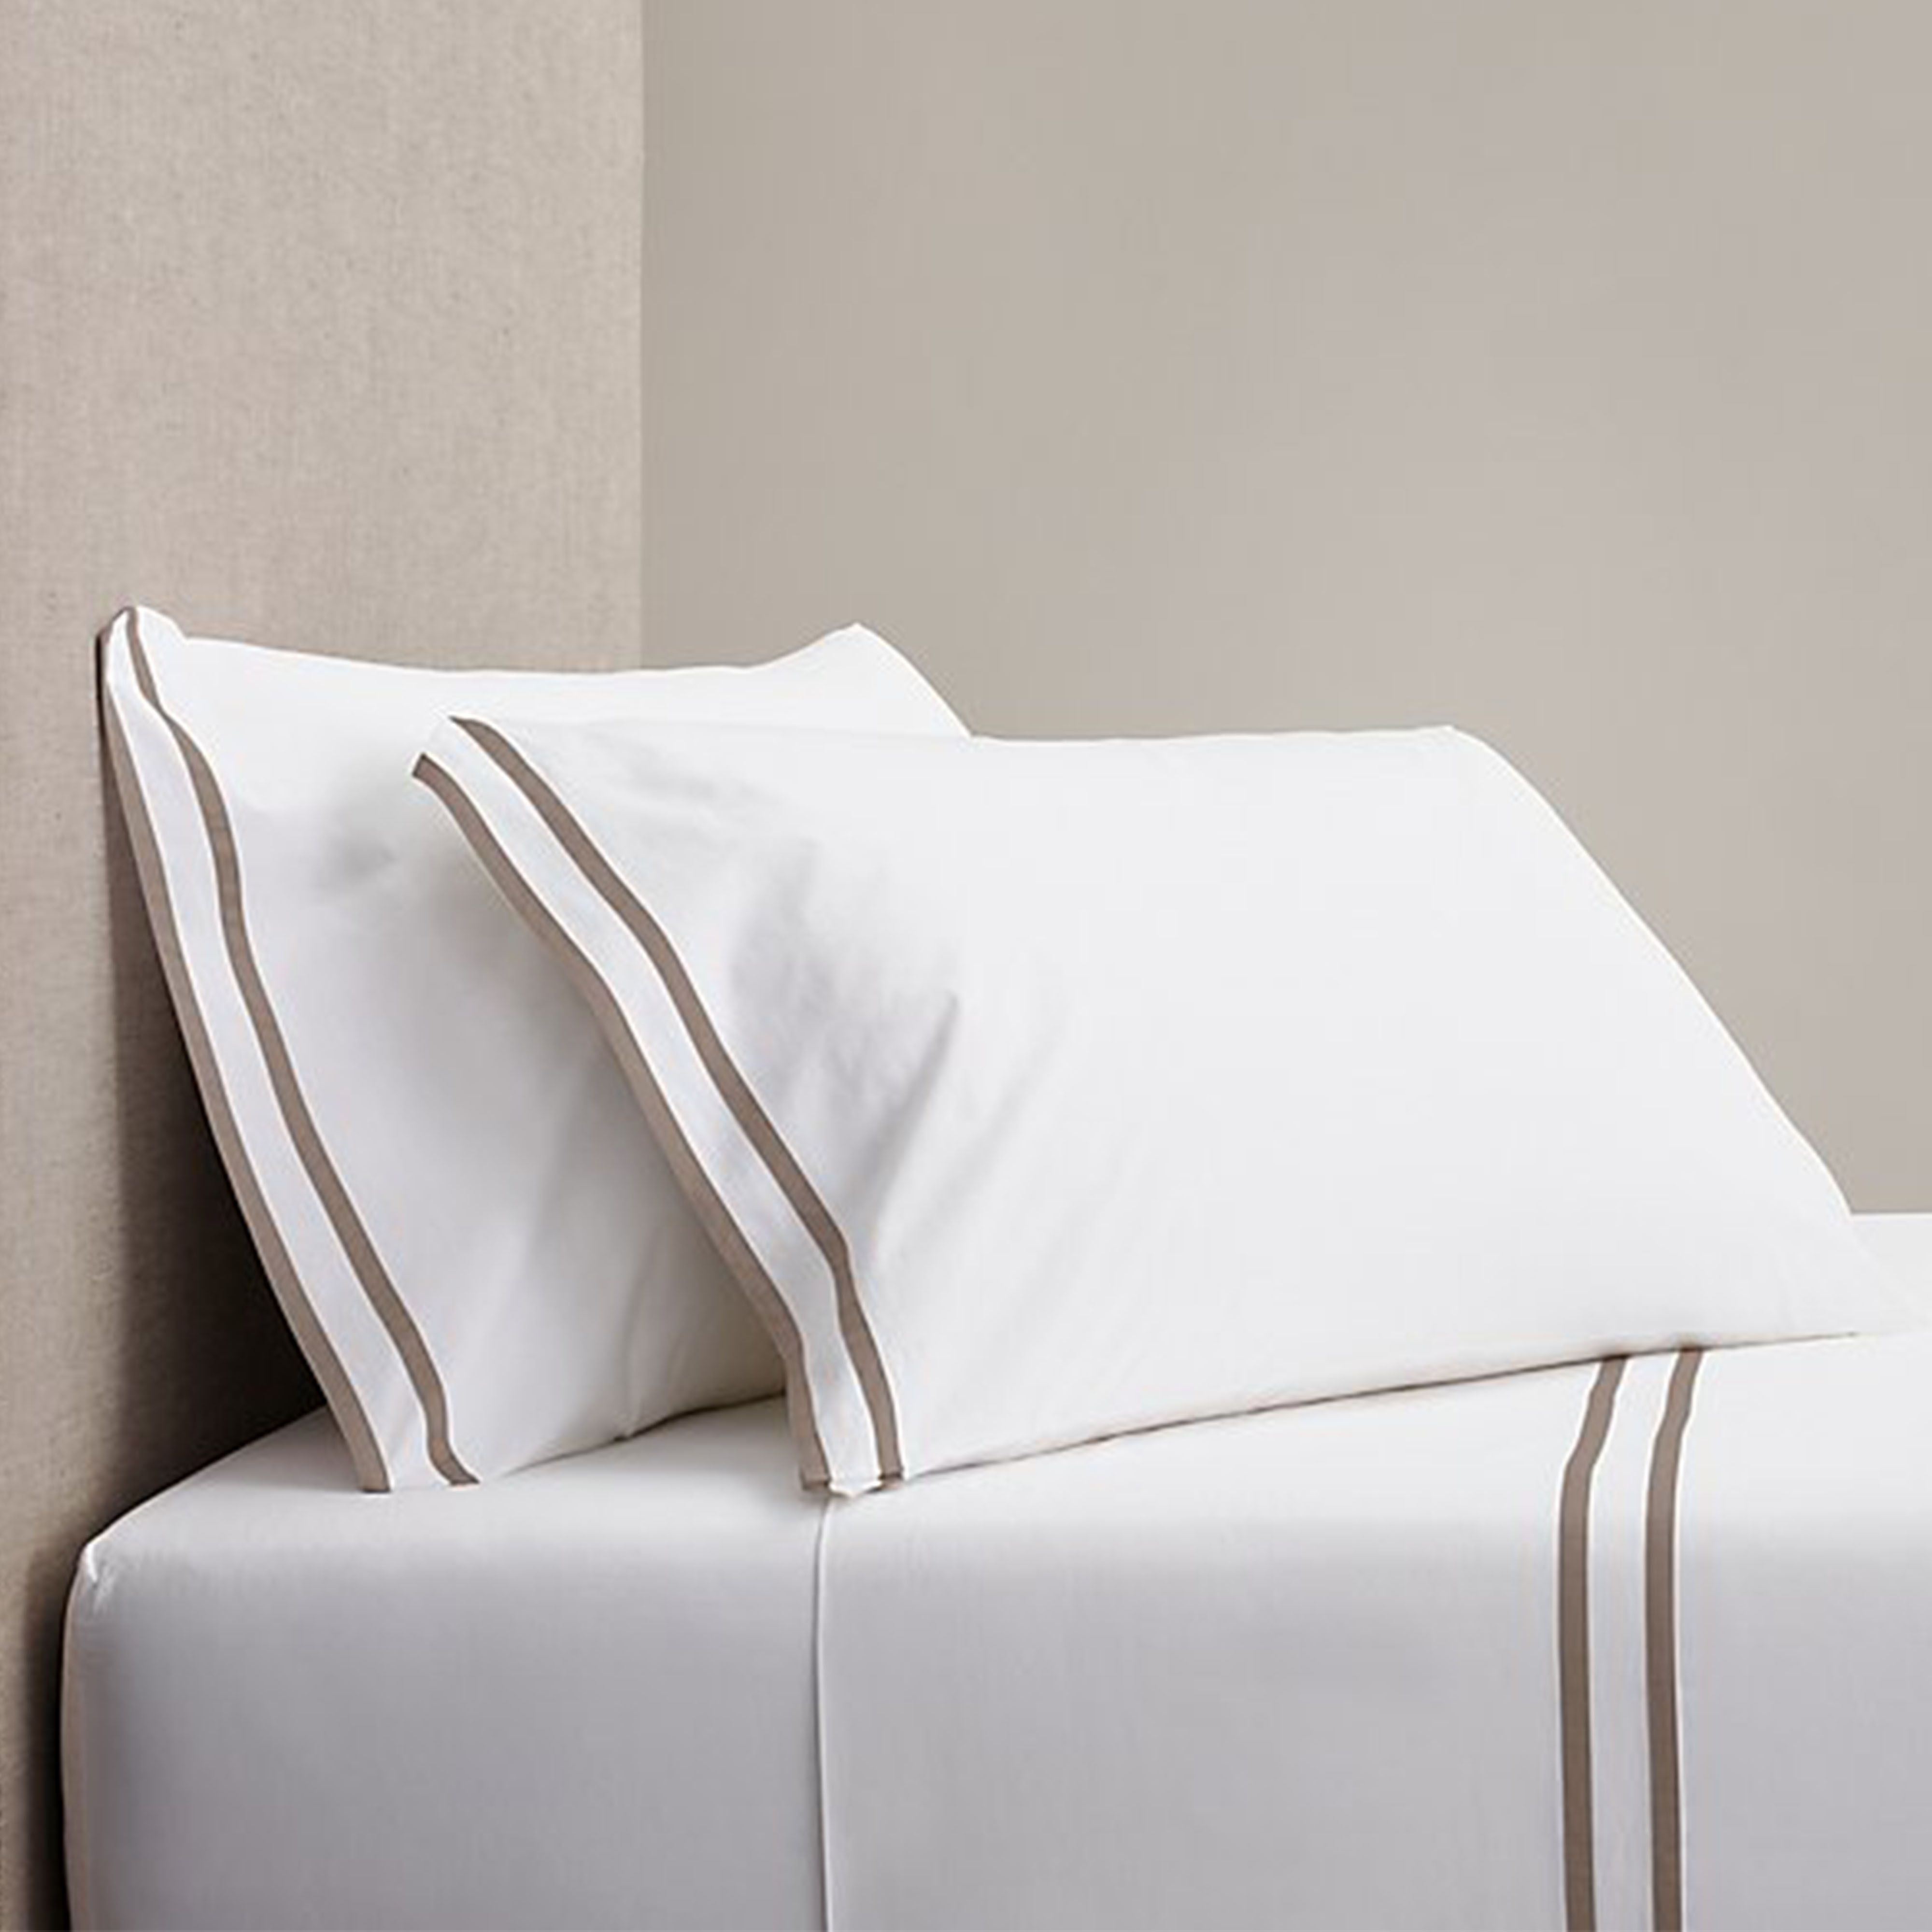 comfort you sheets keep best all the night cool to p comforter hotel